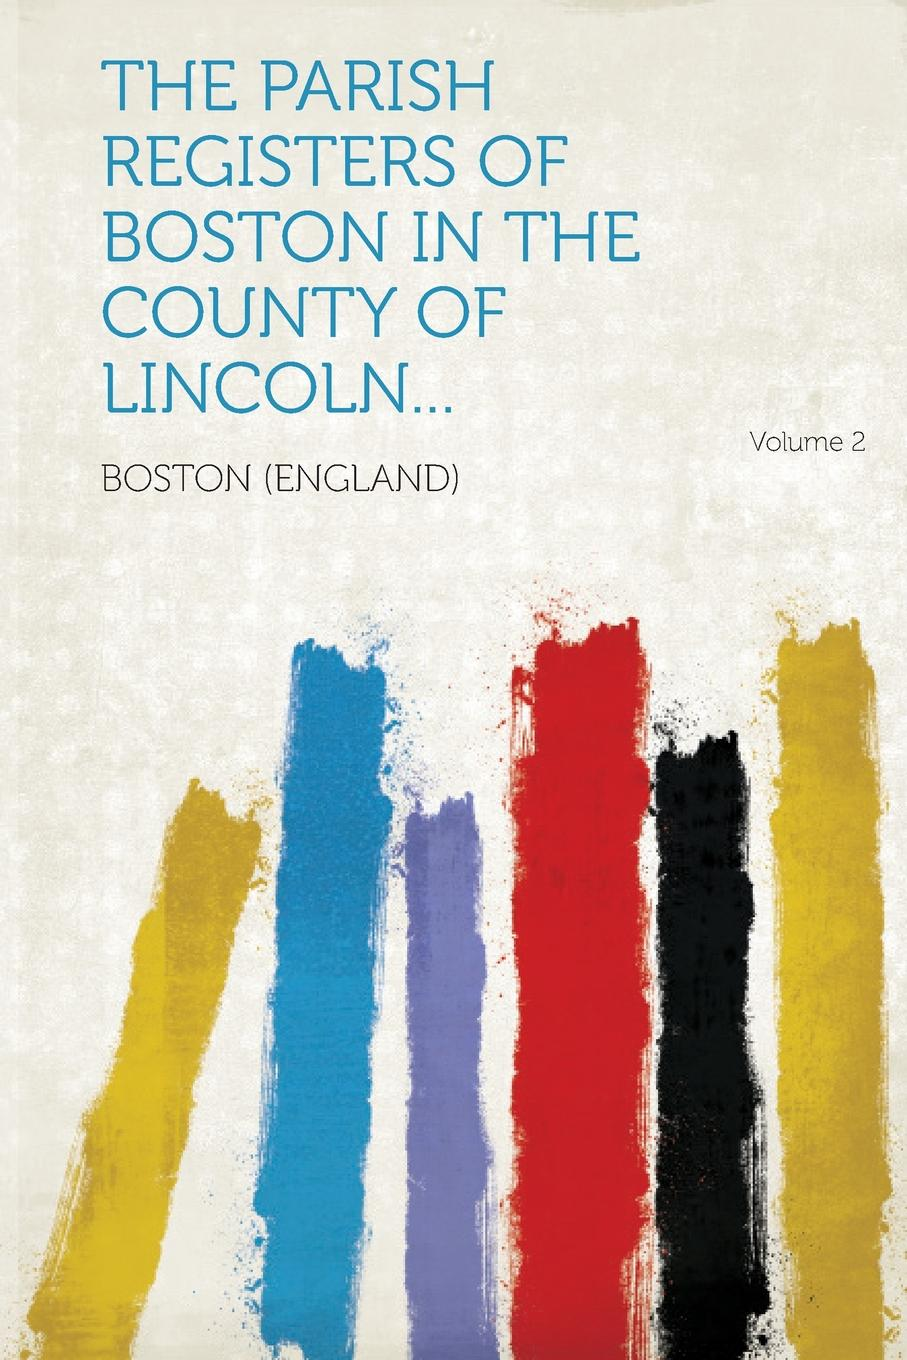 The Parish Registers of Boston in the County of Lincoln... Volume 2